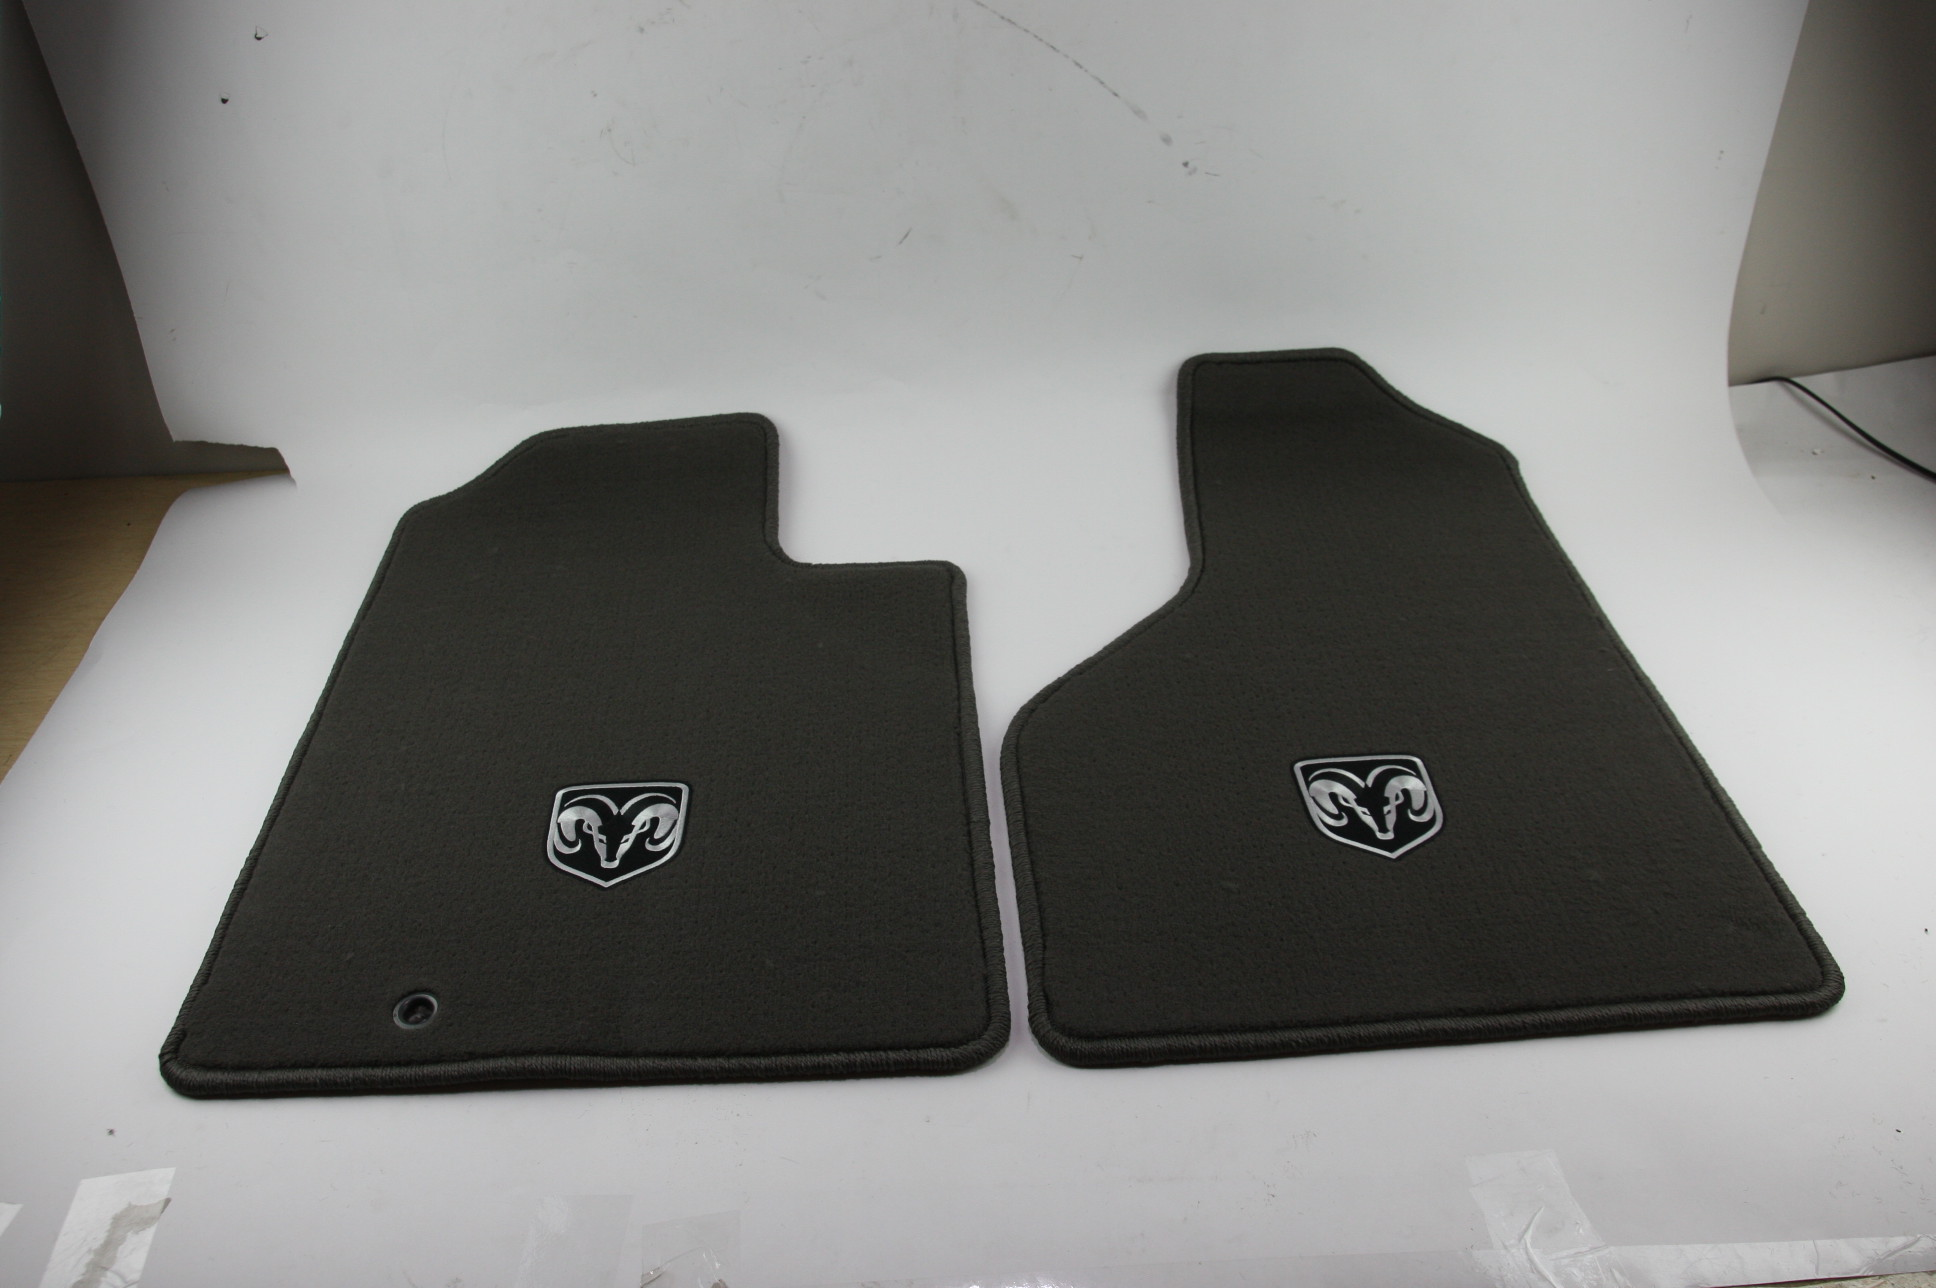 New OEM Mopar 82209560 06-08 Dodge Ram 1500 Front Carpeted Floor Mats Dark Khaki - image 7